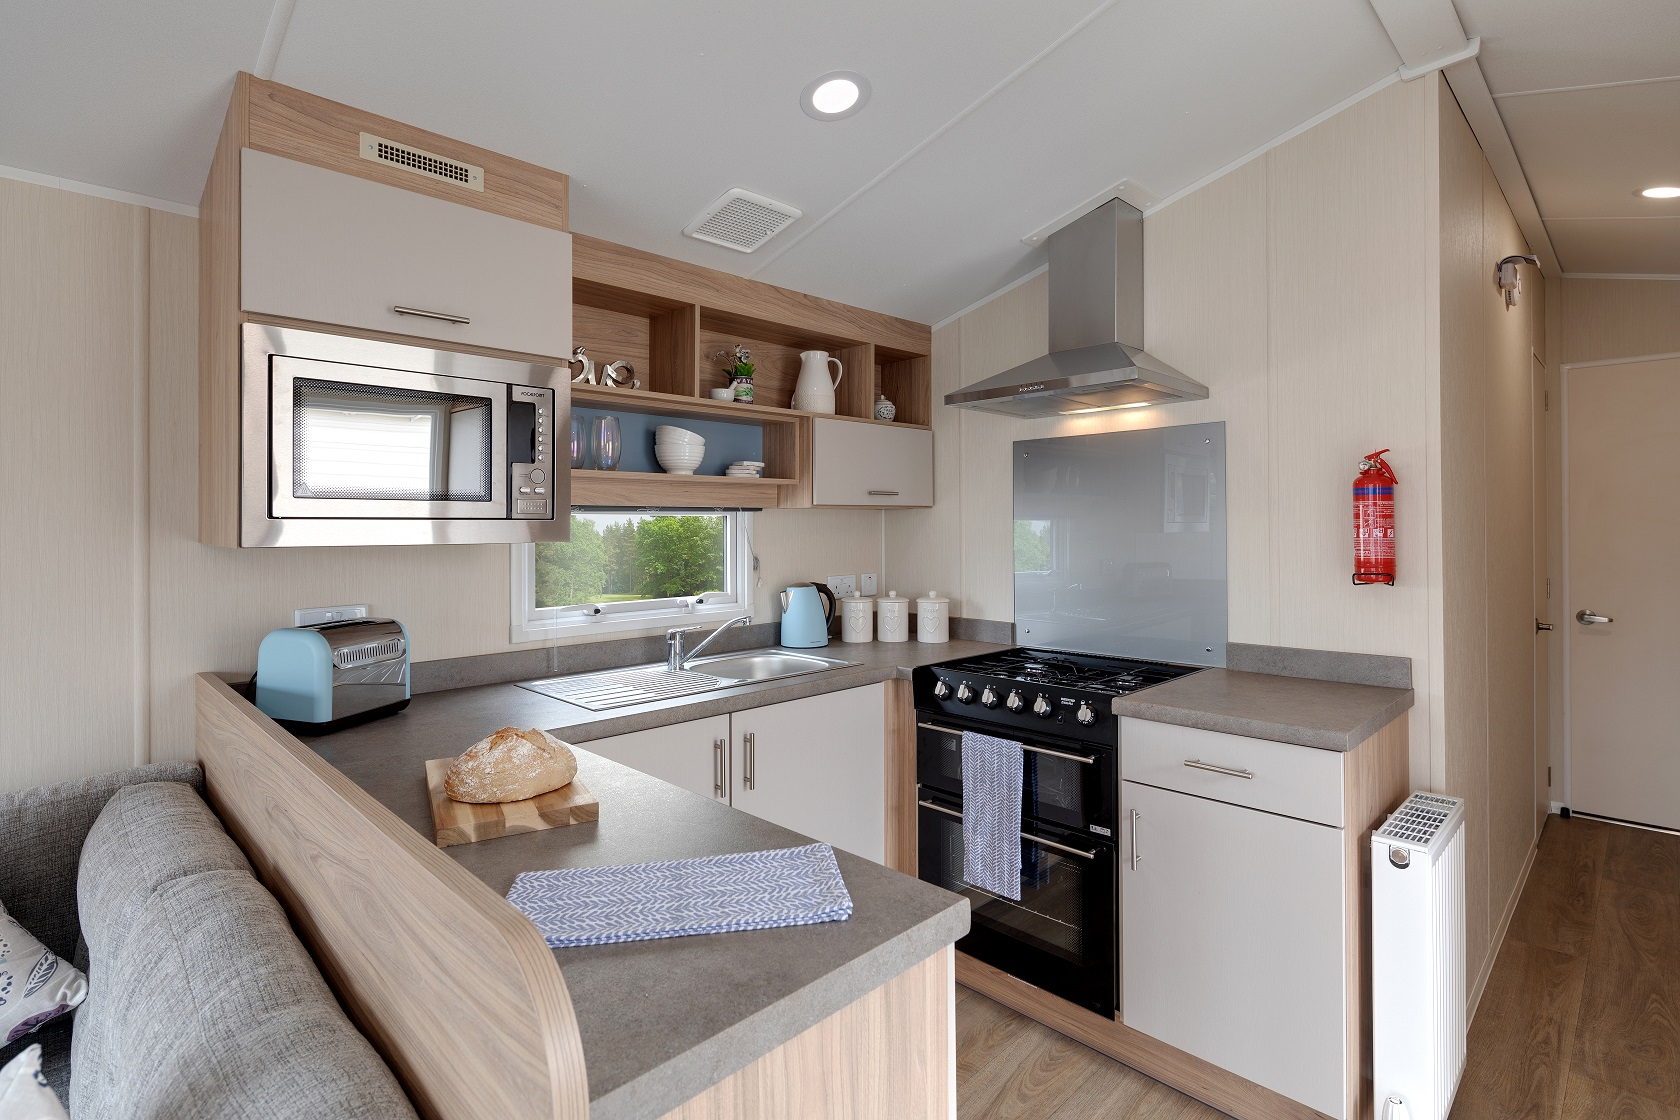 Willerby Linwood: New Static Caravans and Holiday Homes for Sale, Adderstone, Belford Large Image 3